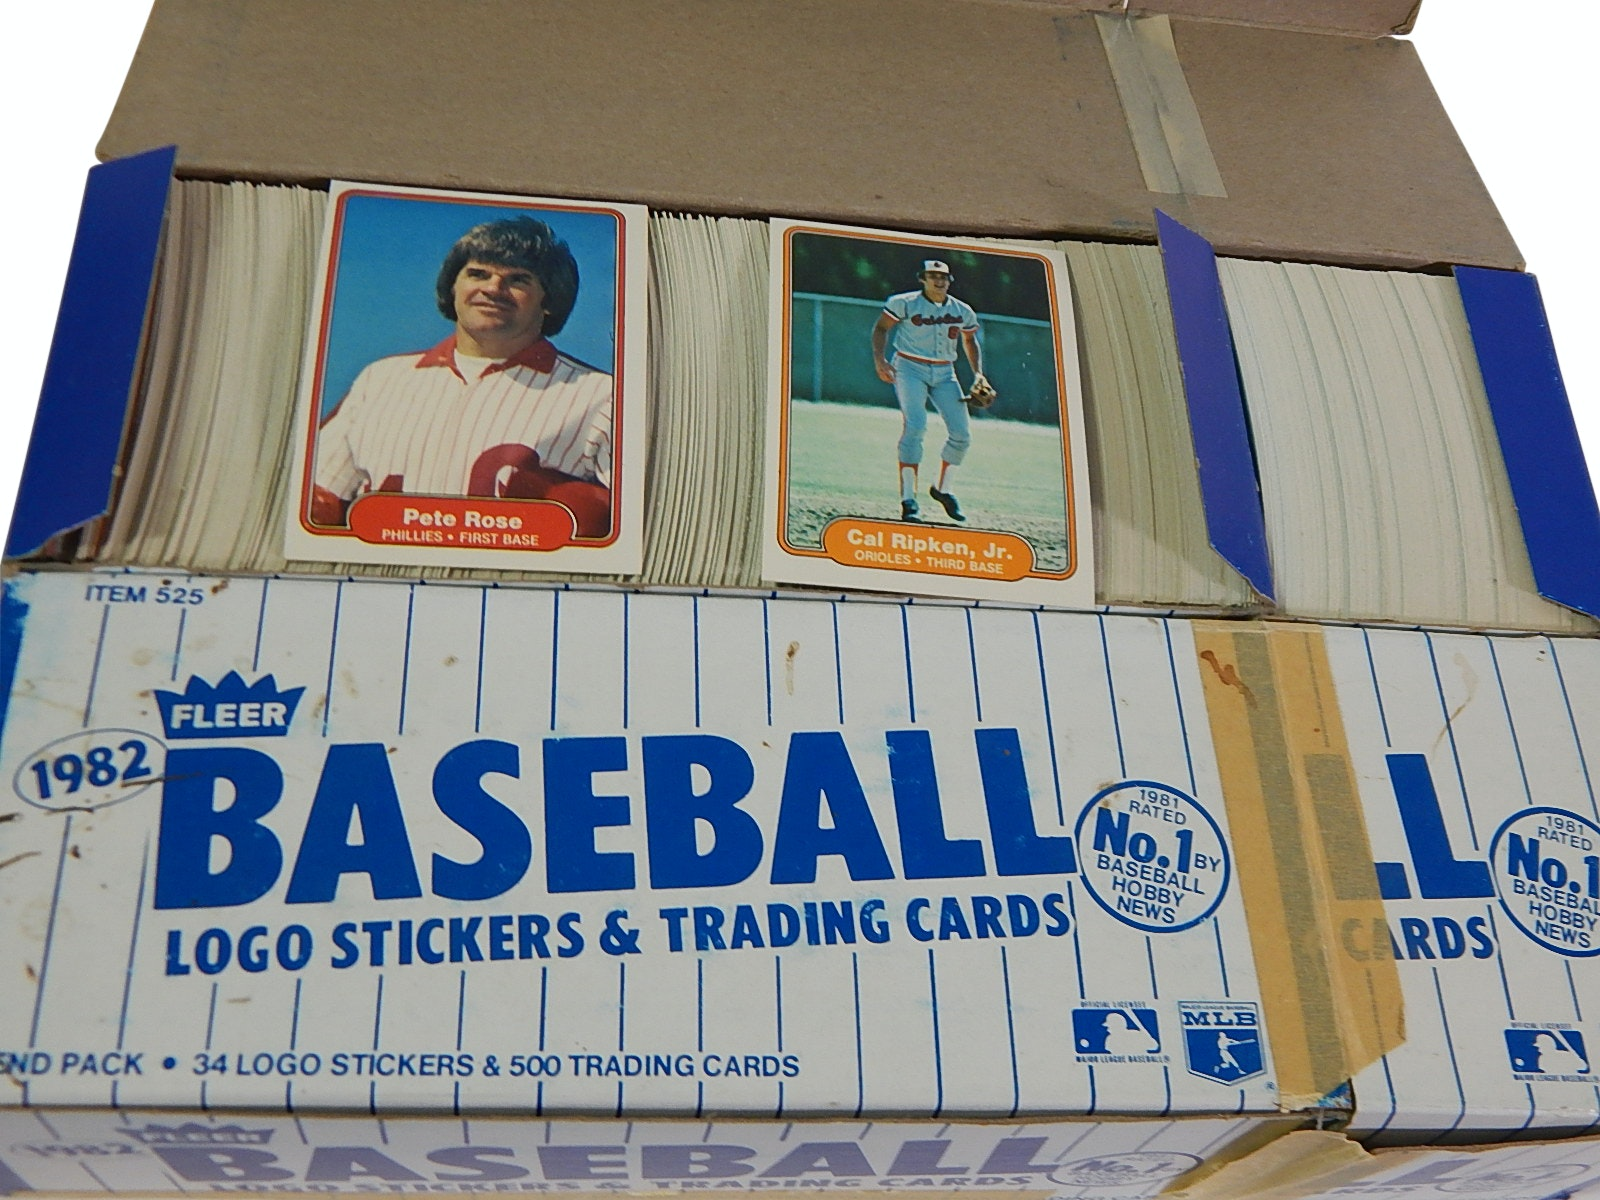 Two Vending Boxes of 1982 Fleer Baseball Cards with Rose, Rikpen Rookie